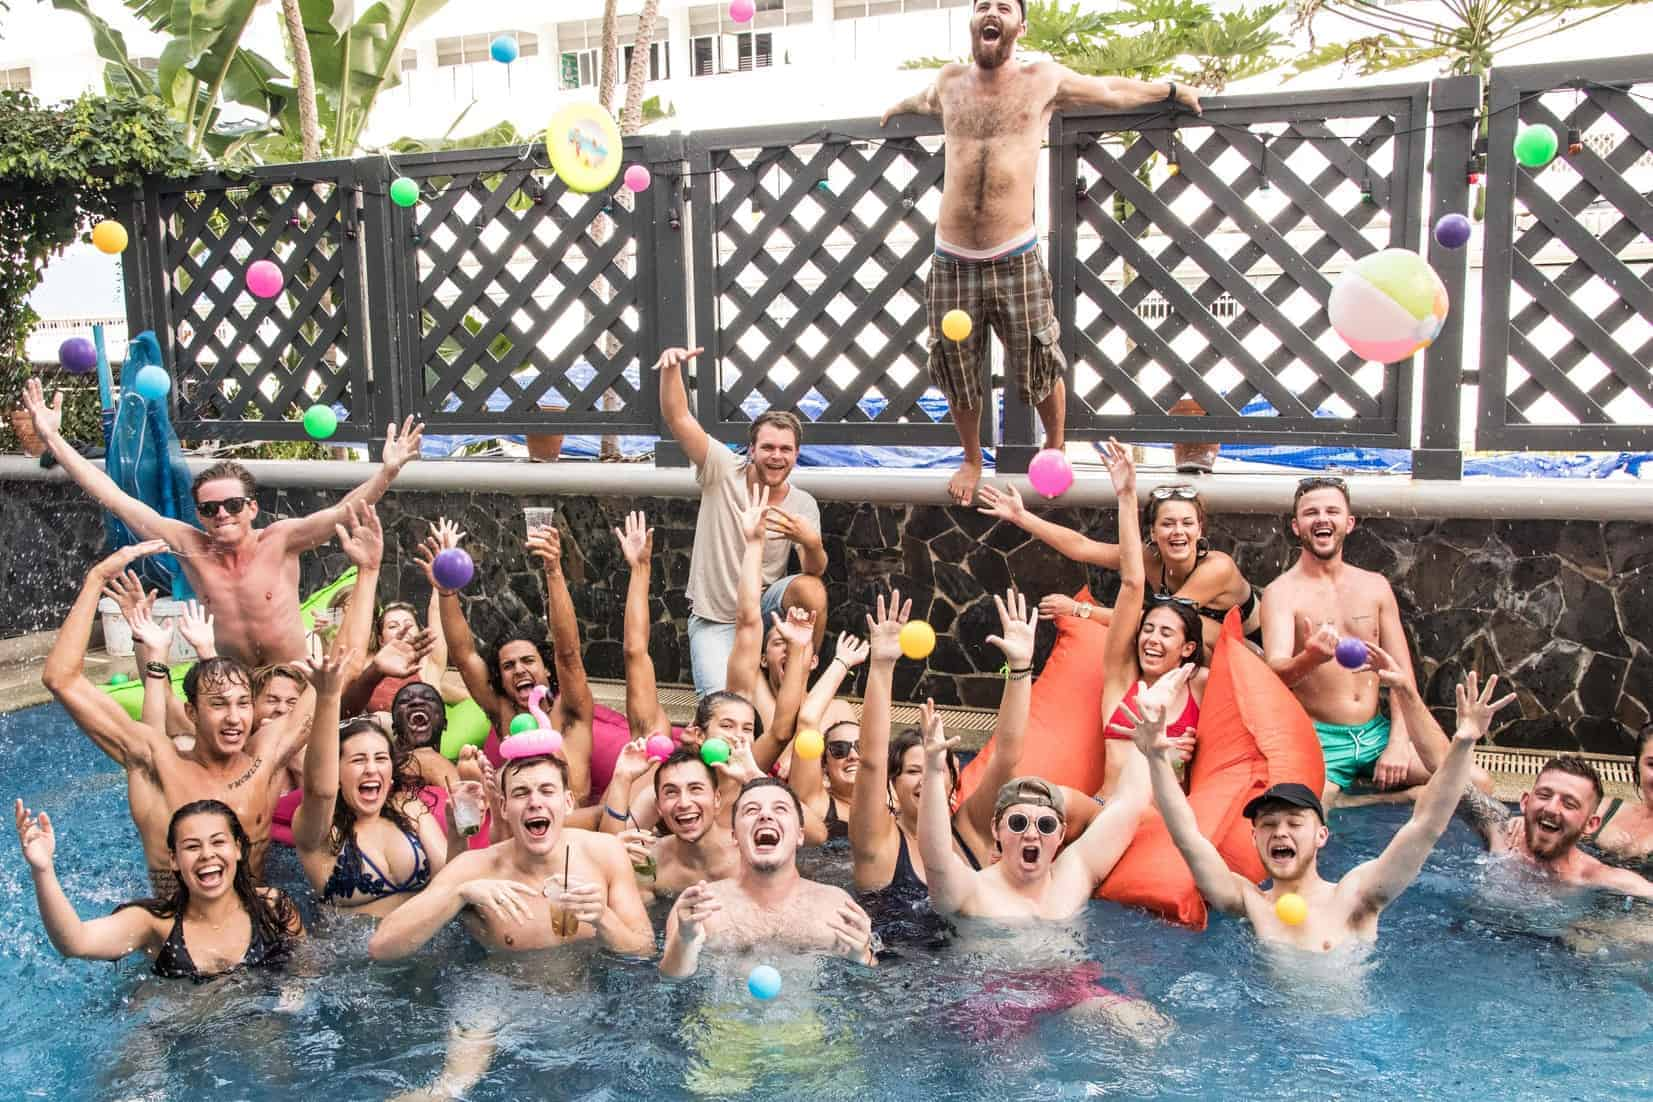 Mad Monkey Hostel Bangkok - One of the best party hostels Bangkok has to offer!